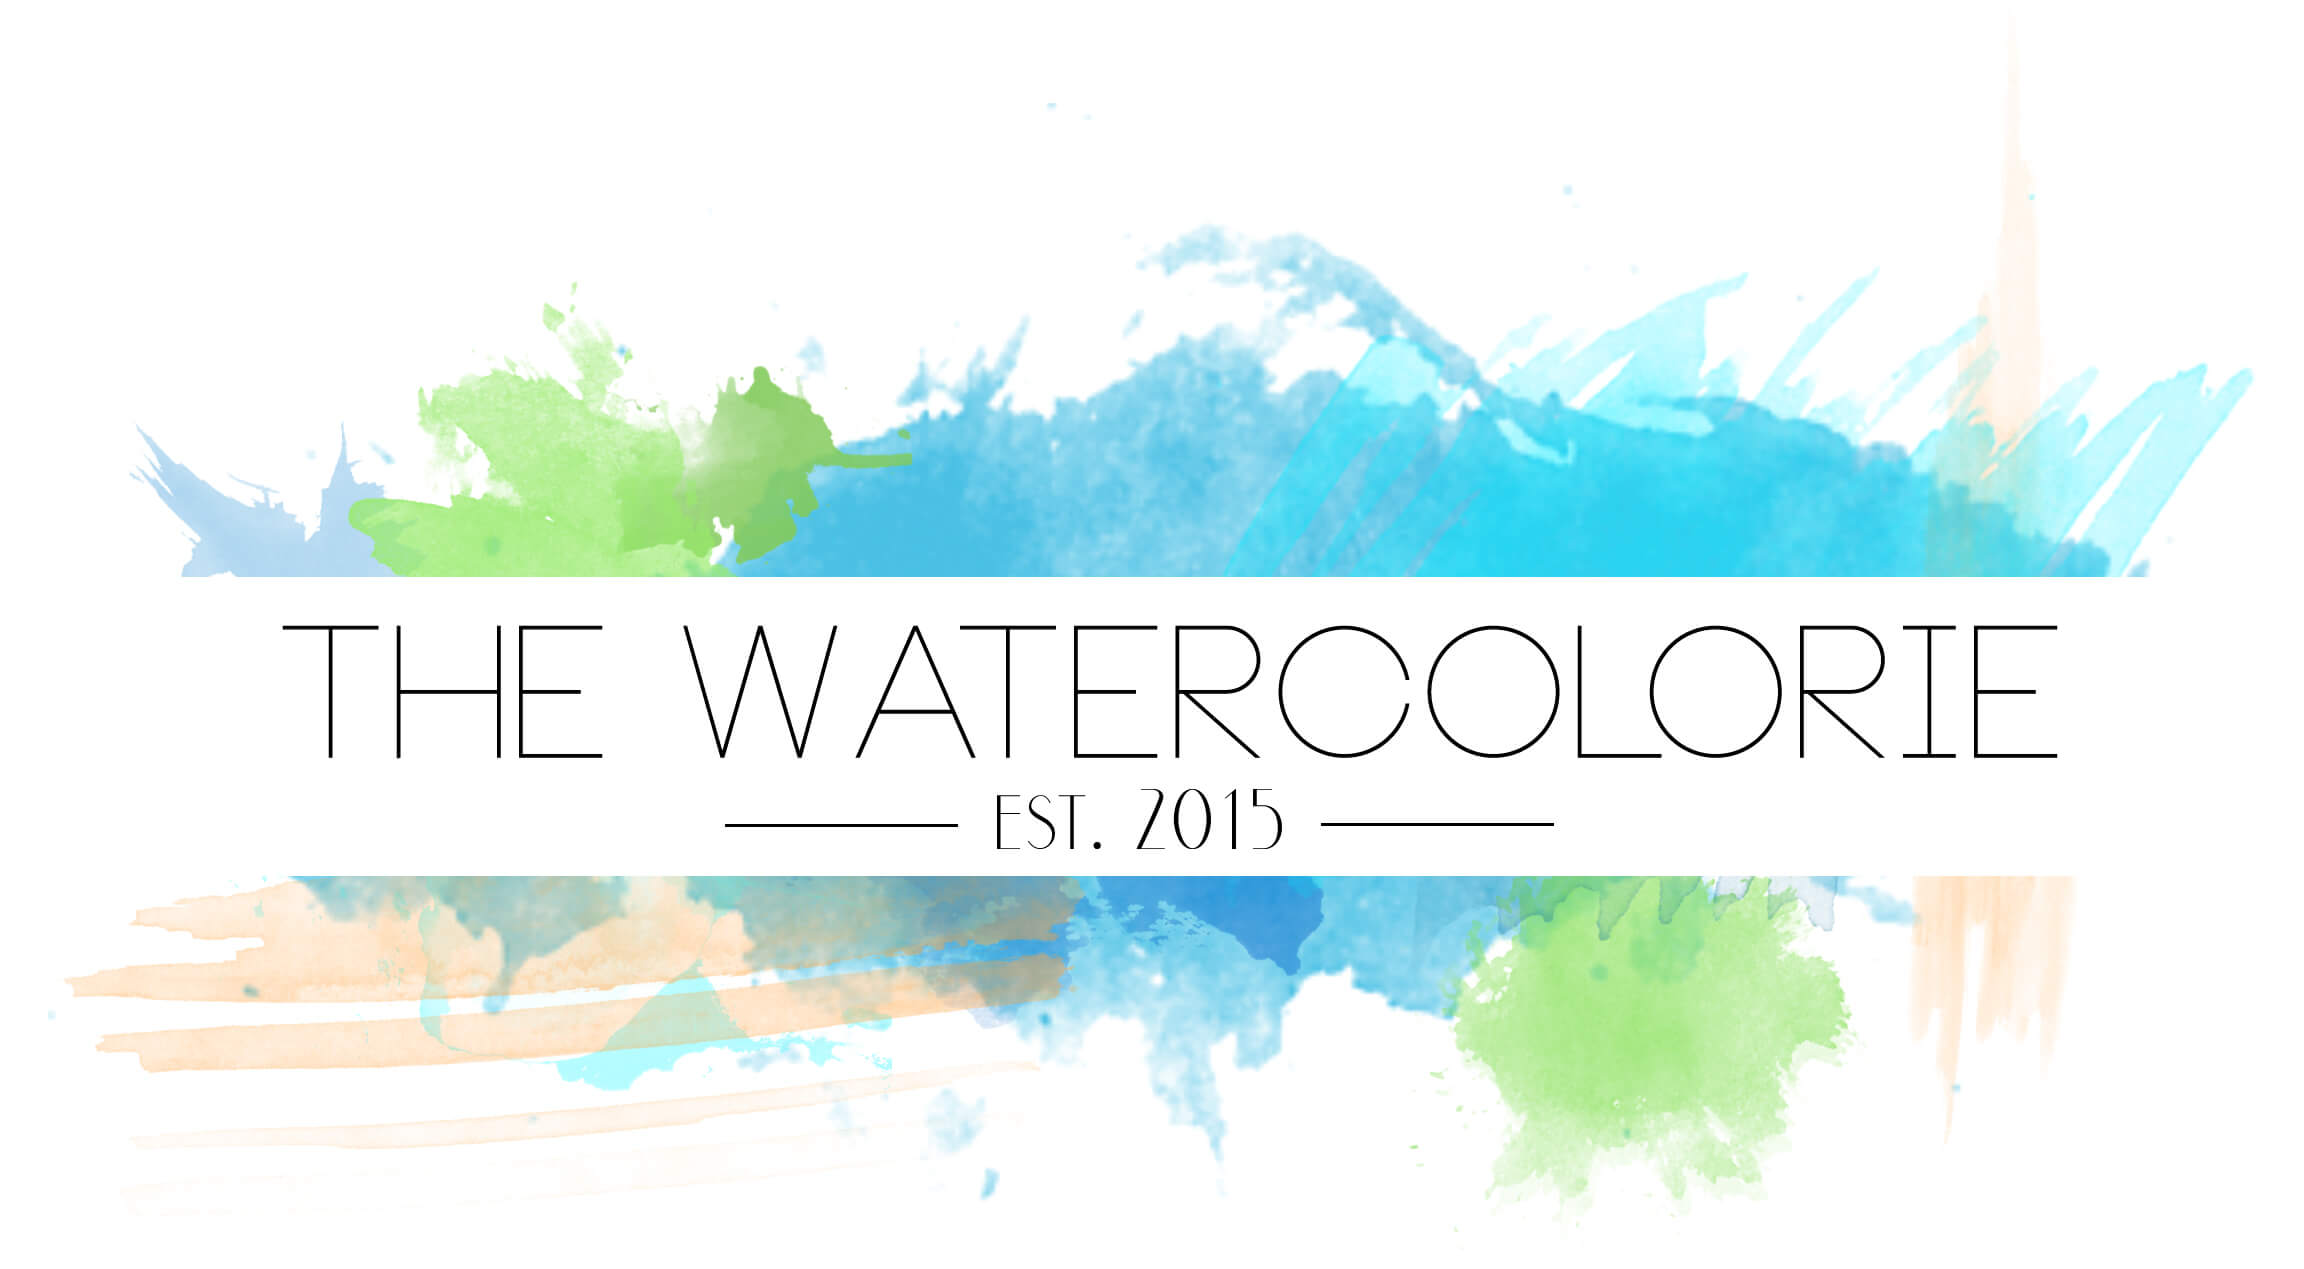 The Watercolorie